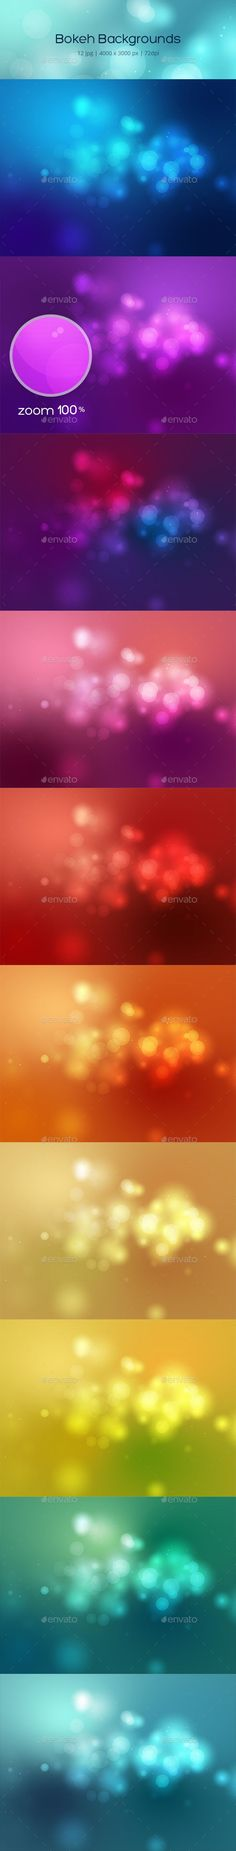 Bokeh Backgrounds - #Backgrounds Graphics